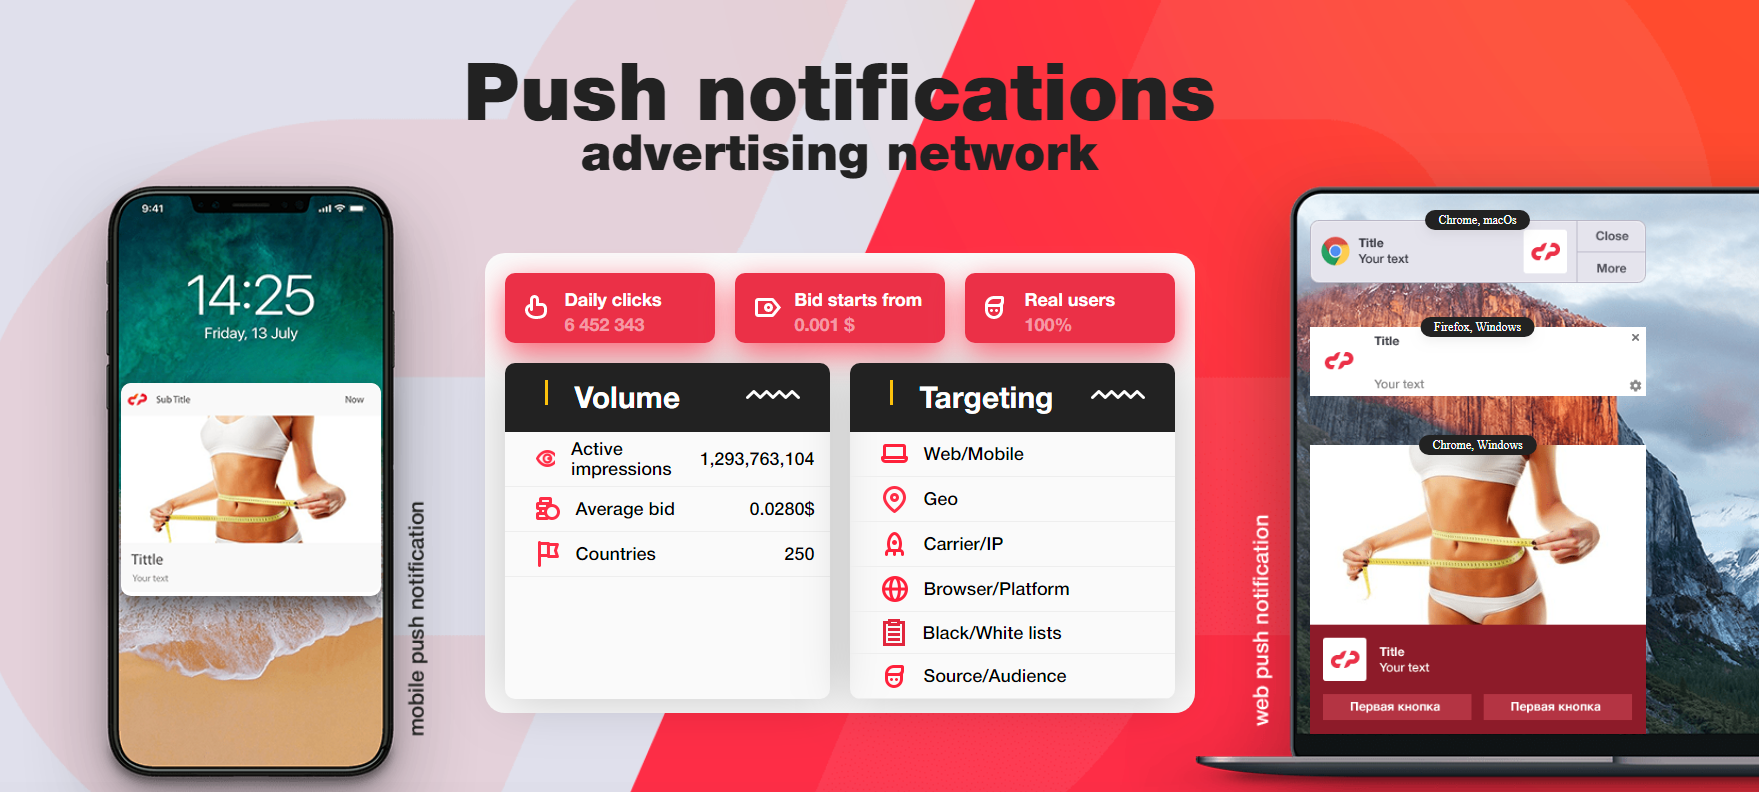 Datspush is an interesting push affiliate program for advertisers and webmasters